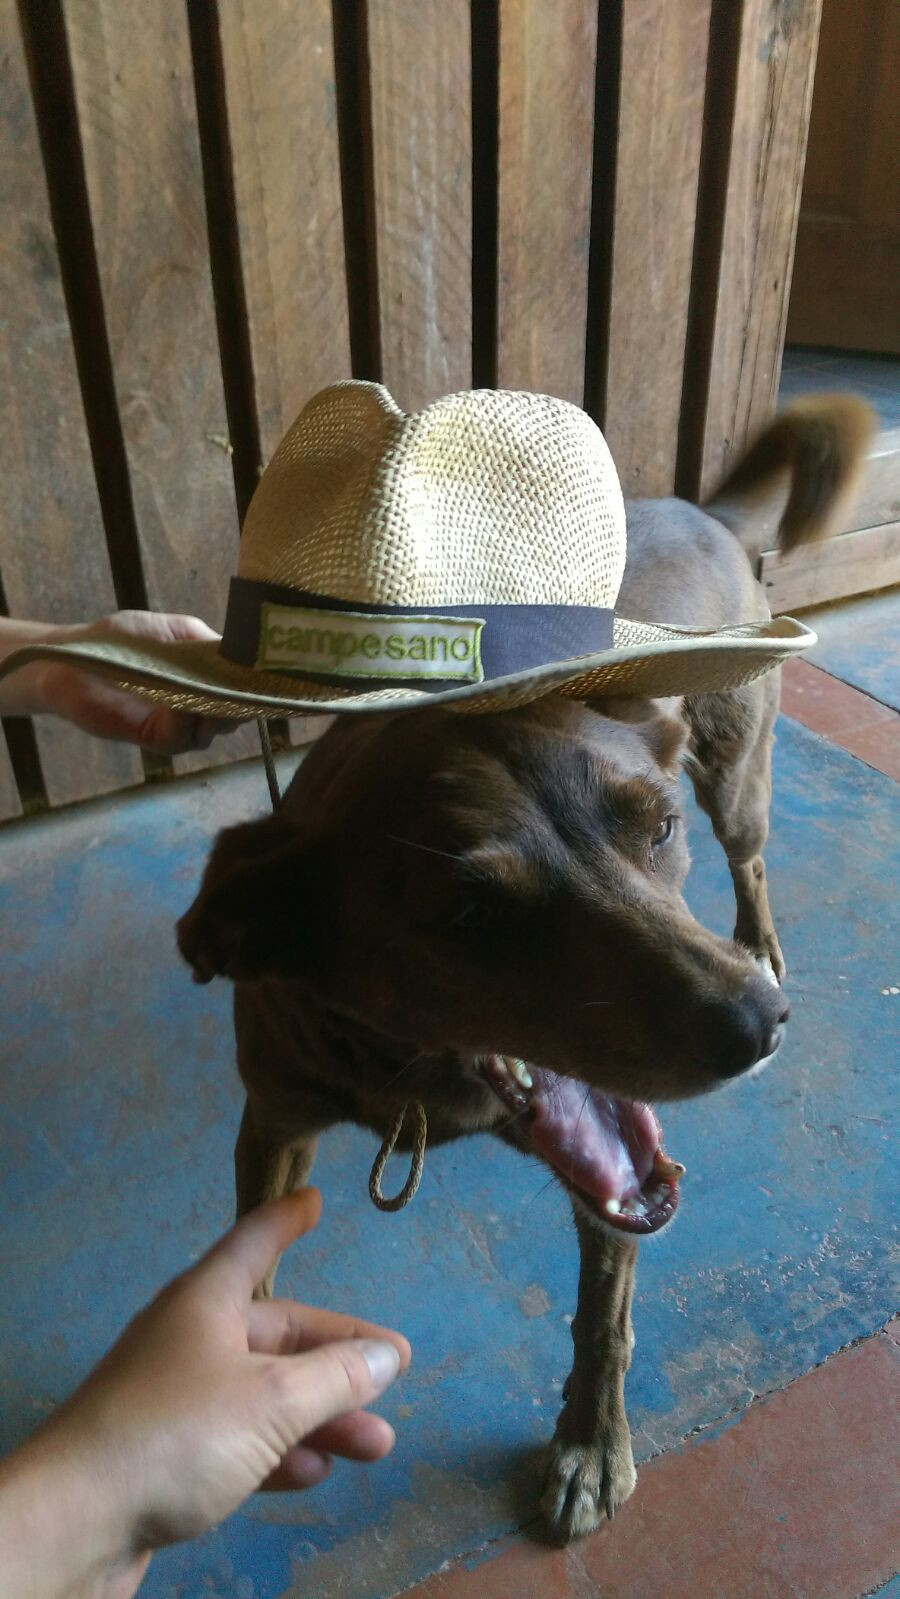 dog with straw hat as sun protection